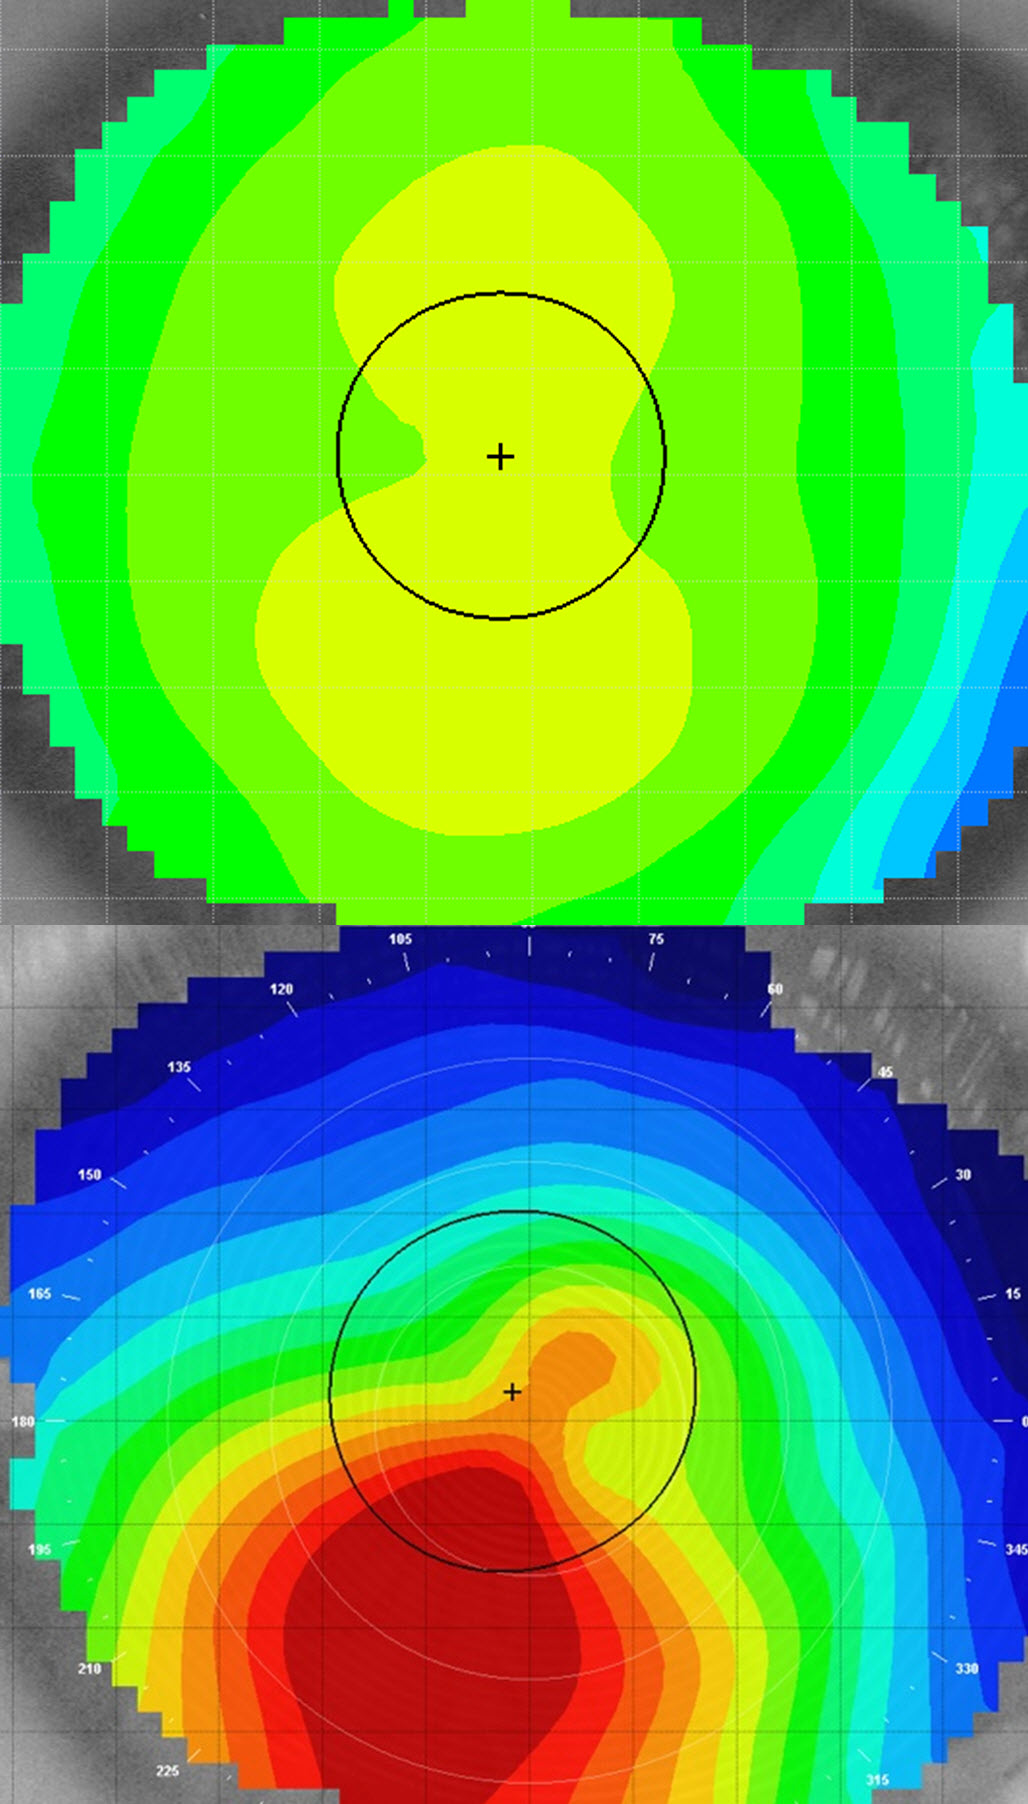 The differnce in the shape of the cornea between a normal eye (top) and keratoconus (bottom).